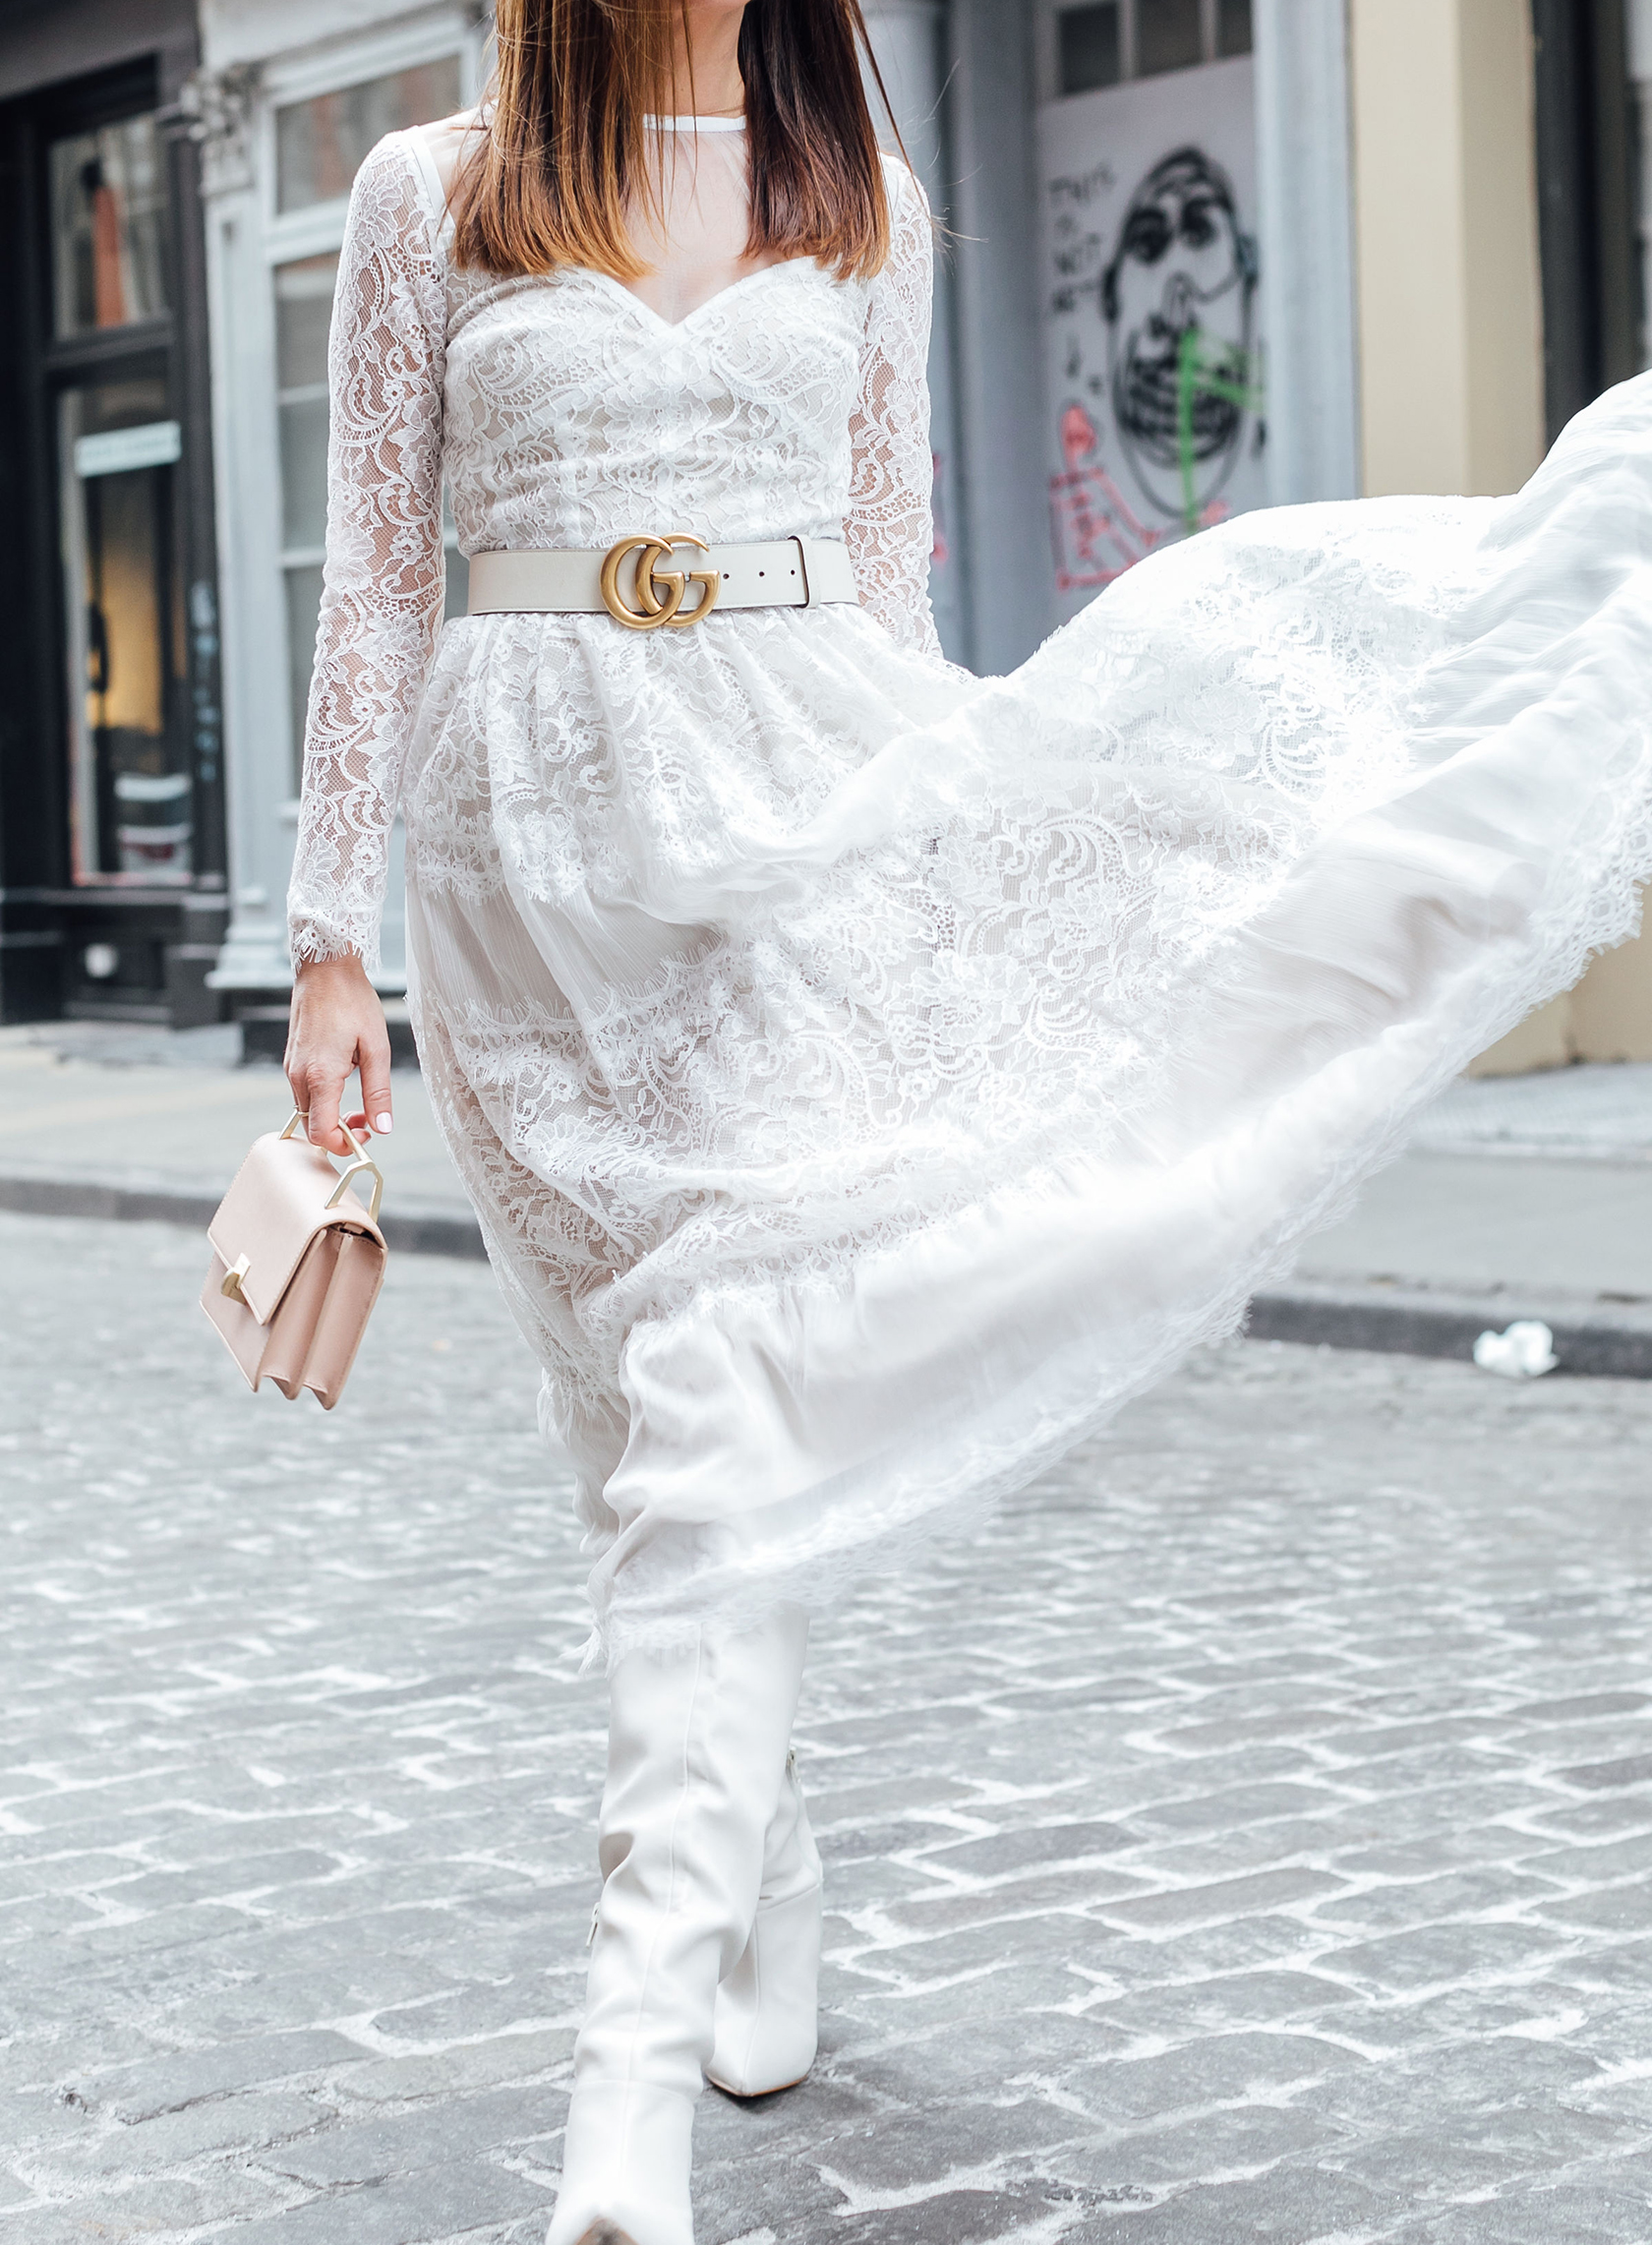 Sydne Style shows how to wear a lace dress with boots for spring style